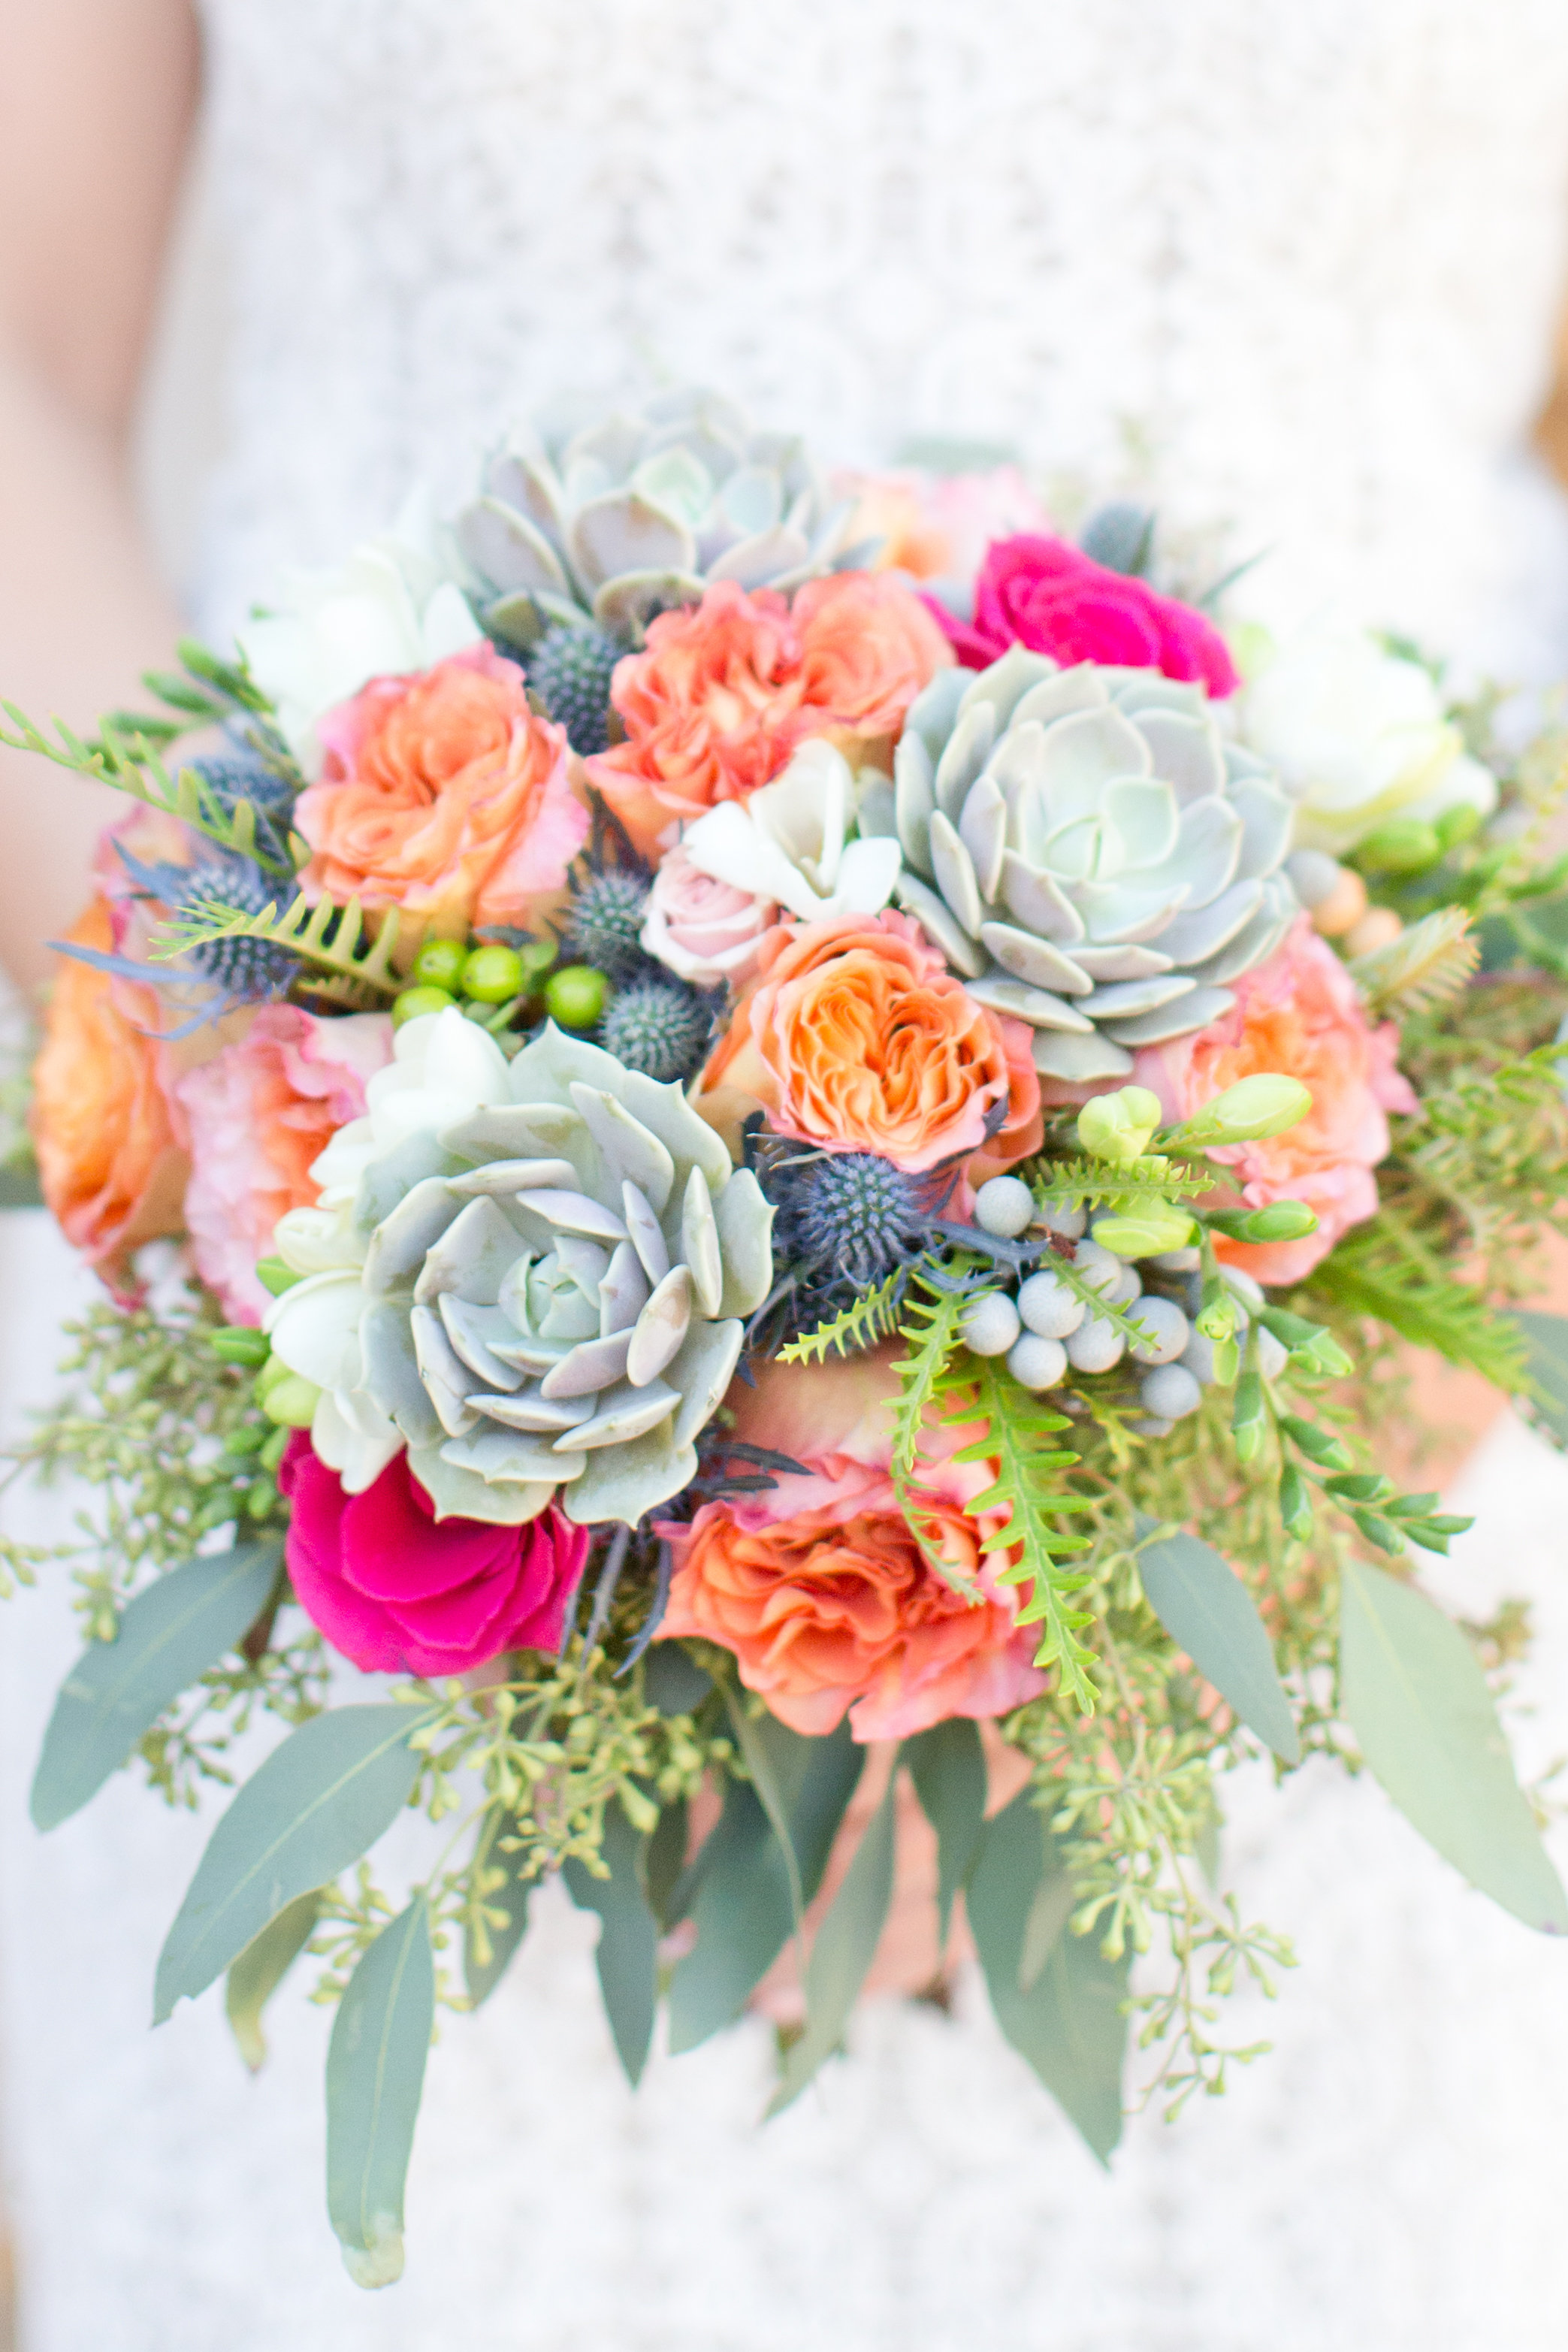 Phoenix-Scottsdale-Arizona-Wedding-Planner-Wedding-Venue-Destination-Wedding-Planner, Omni Montelucia weddings, sunset weddings, Arizona Sunset weddings, wedding details, bridal bouquet, succulent bouquets, orange pink blue green flowers